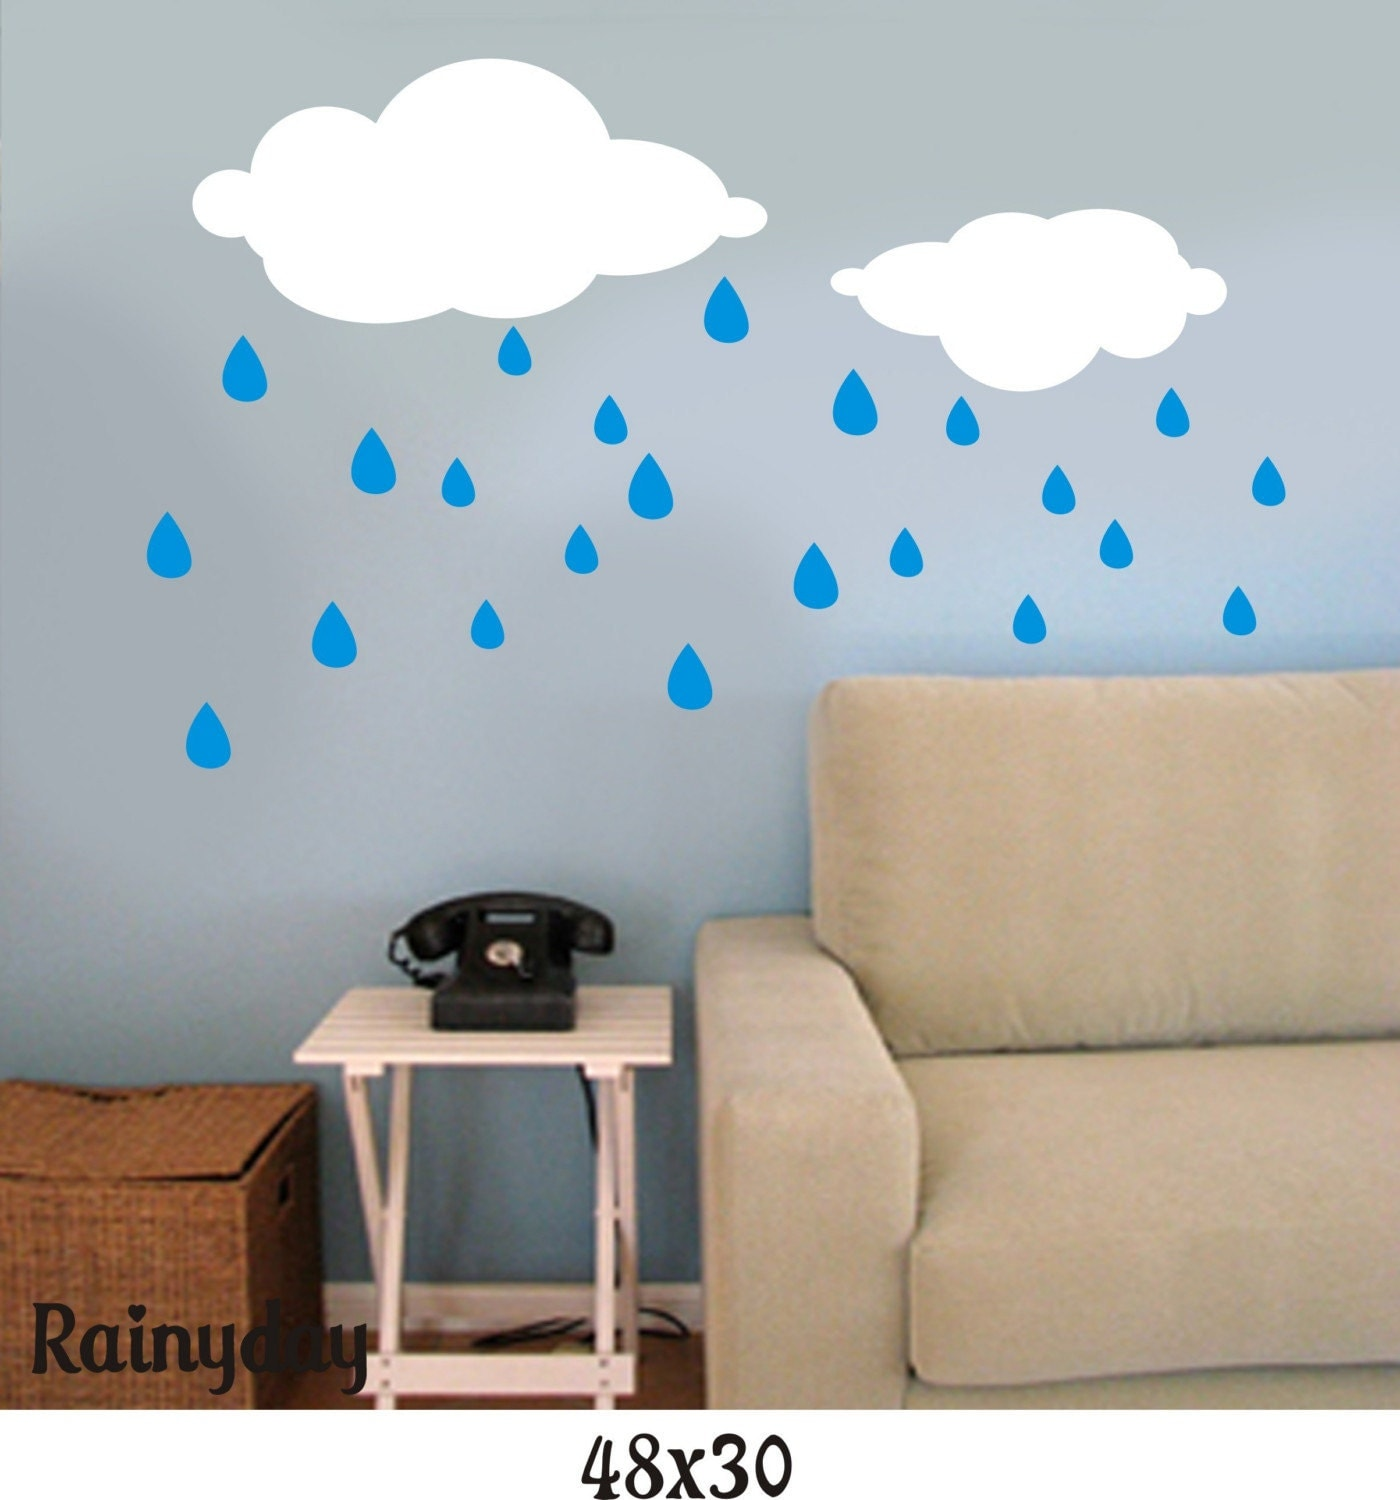 Rainy Day Vinyl Wall Graphic/Decal